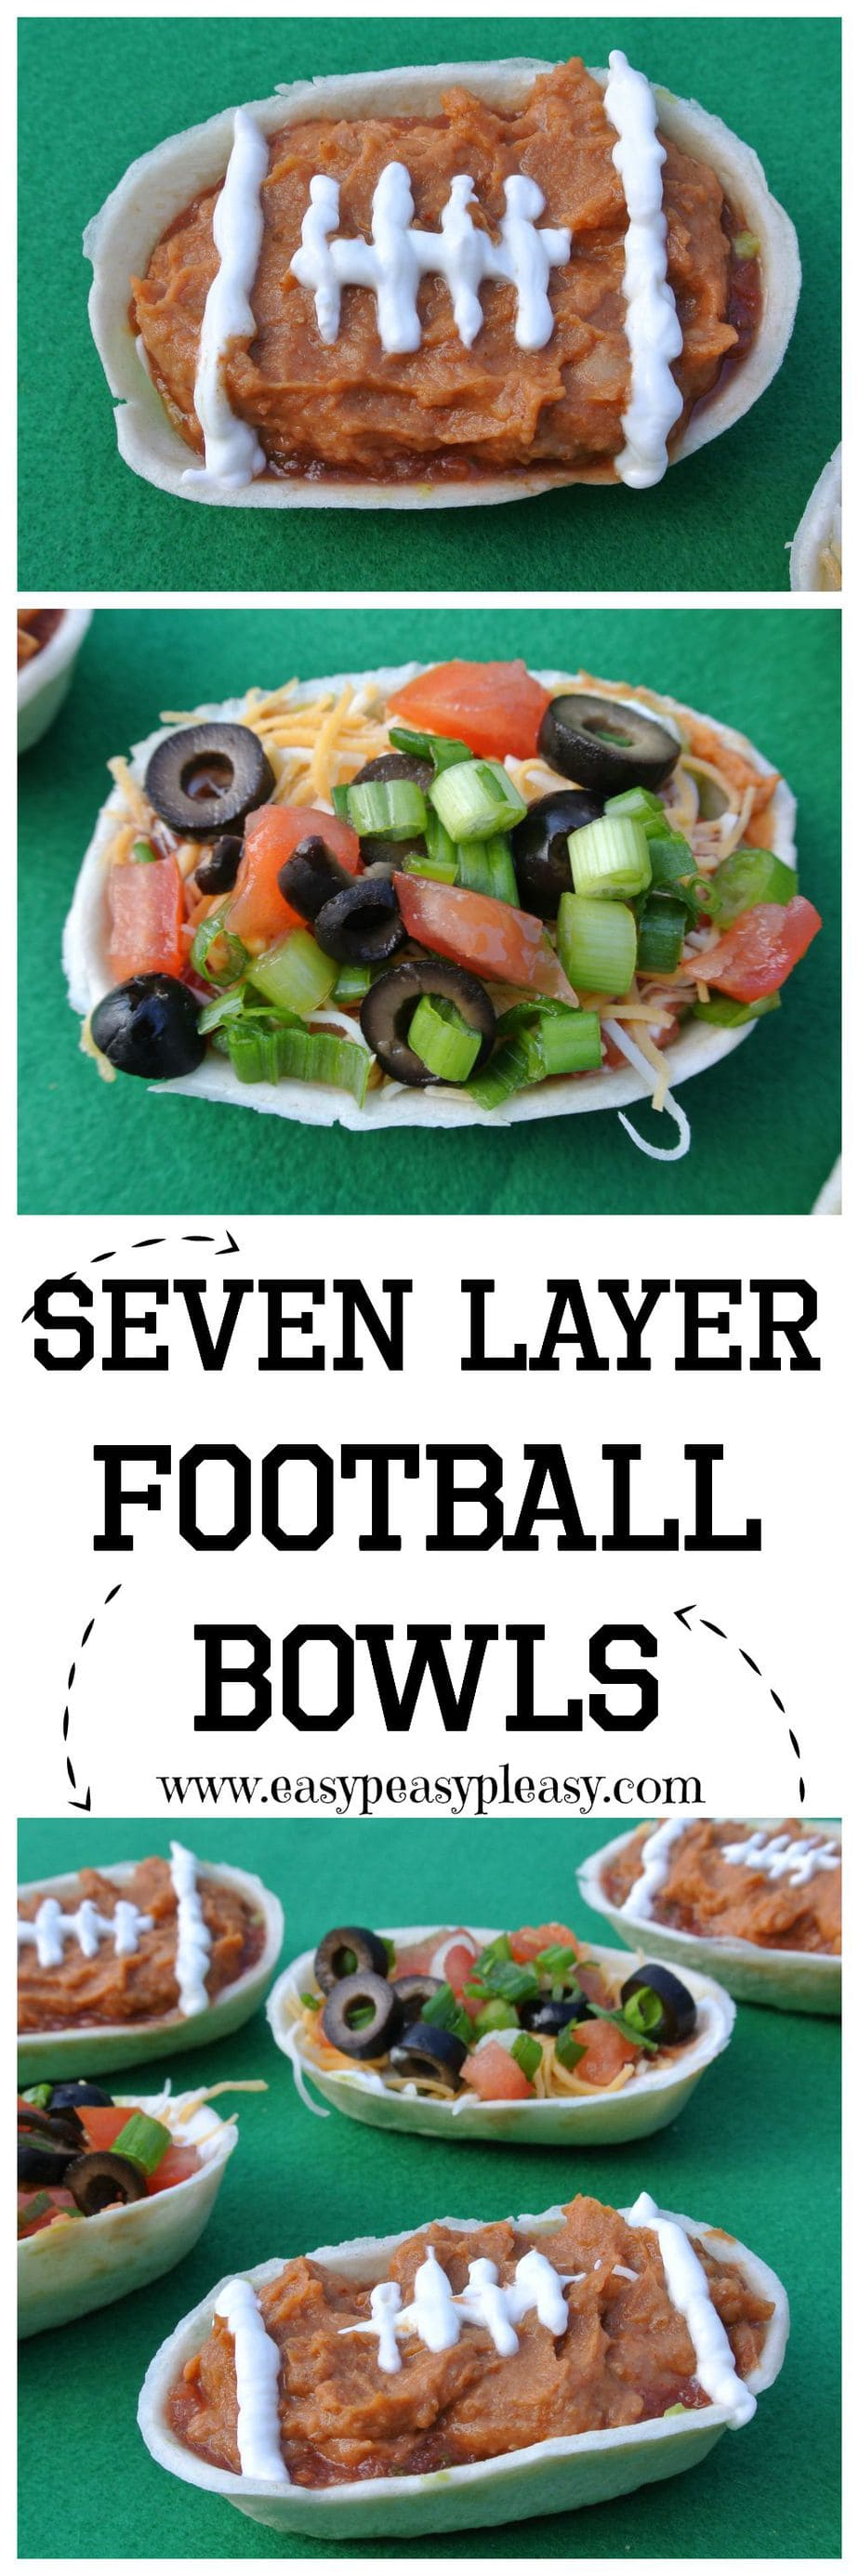 Are you ready for some football seven layer dip bowls These bowls are the perfect appetizer for your next football party!